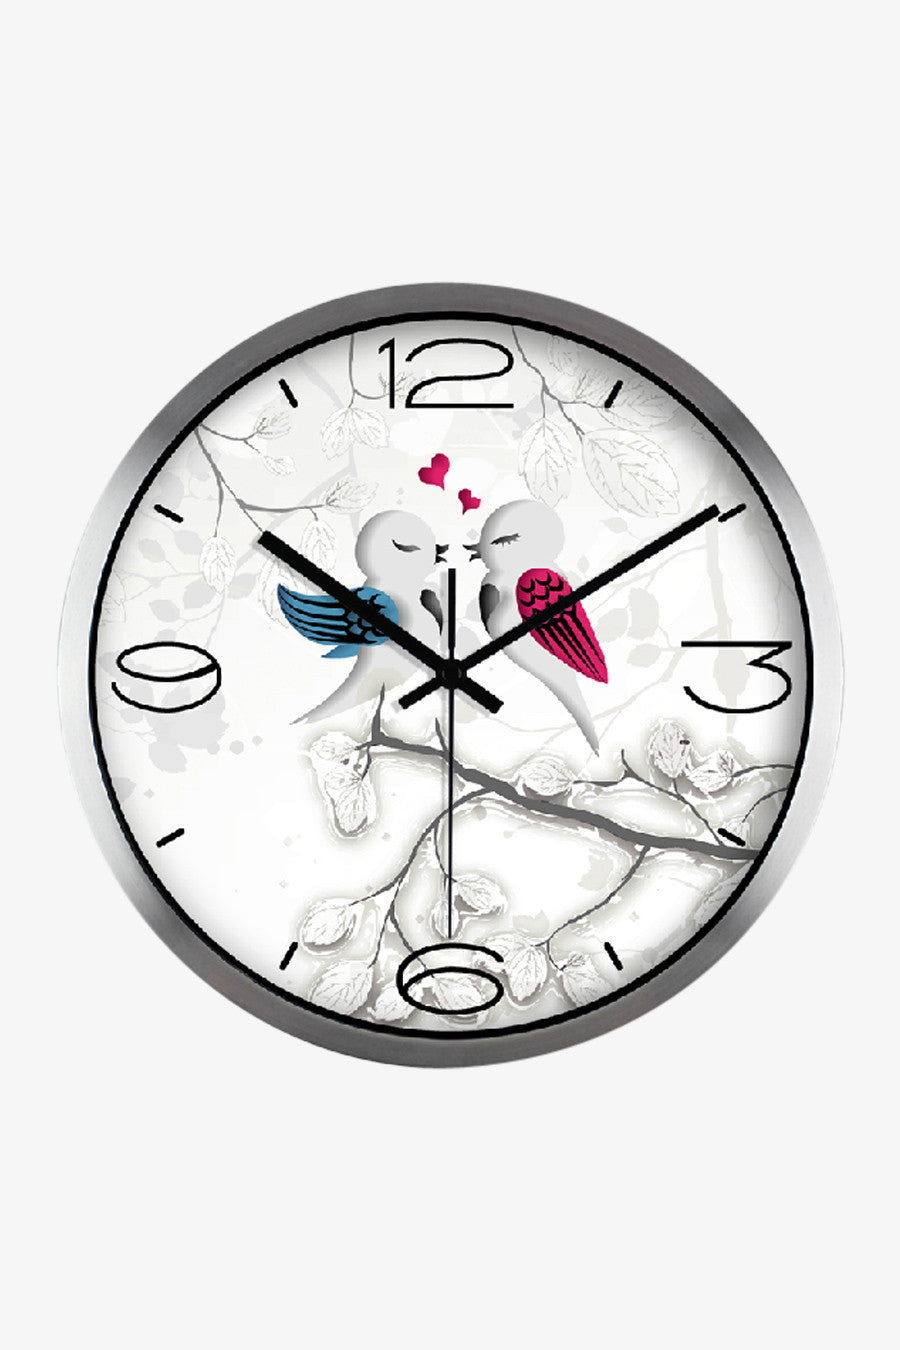 Silver Satin Frame Birds Clock